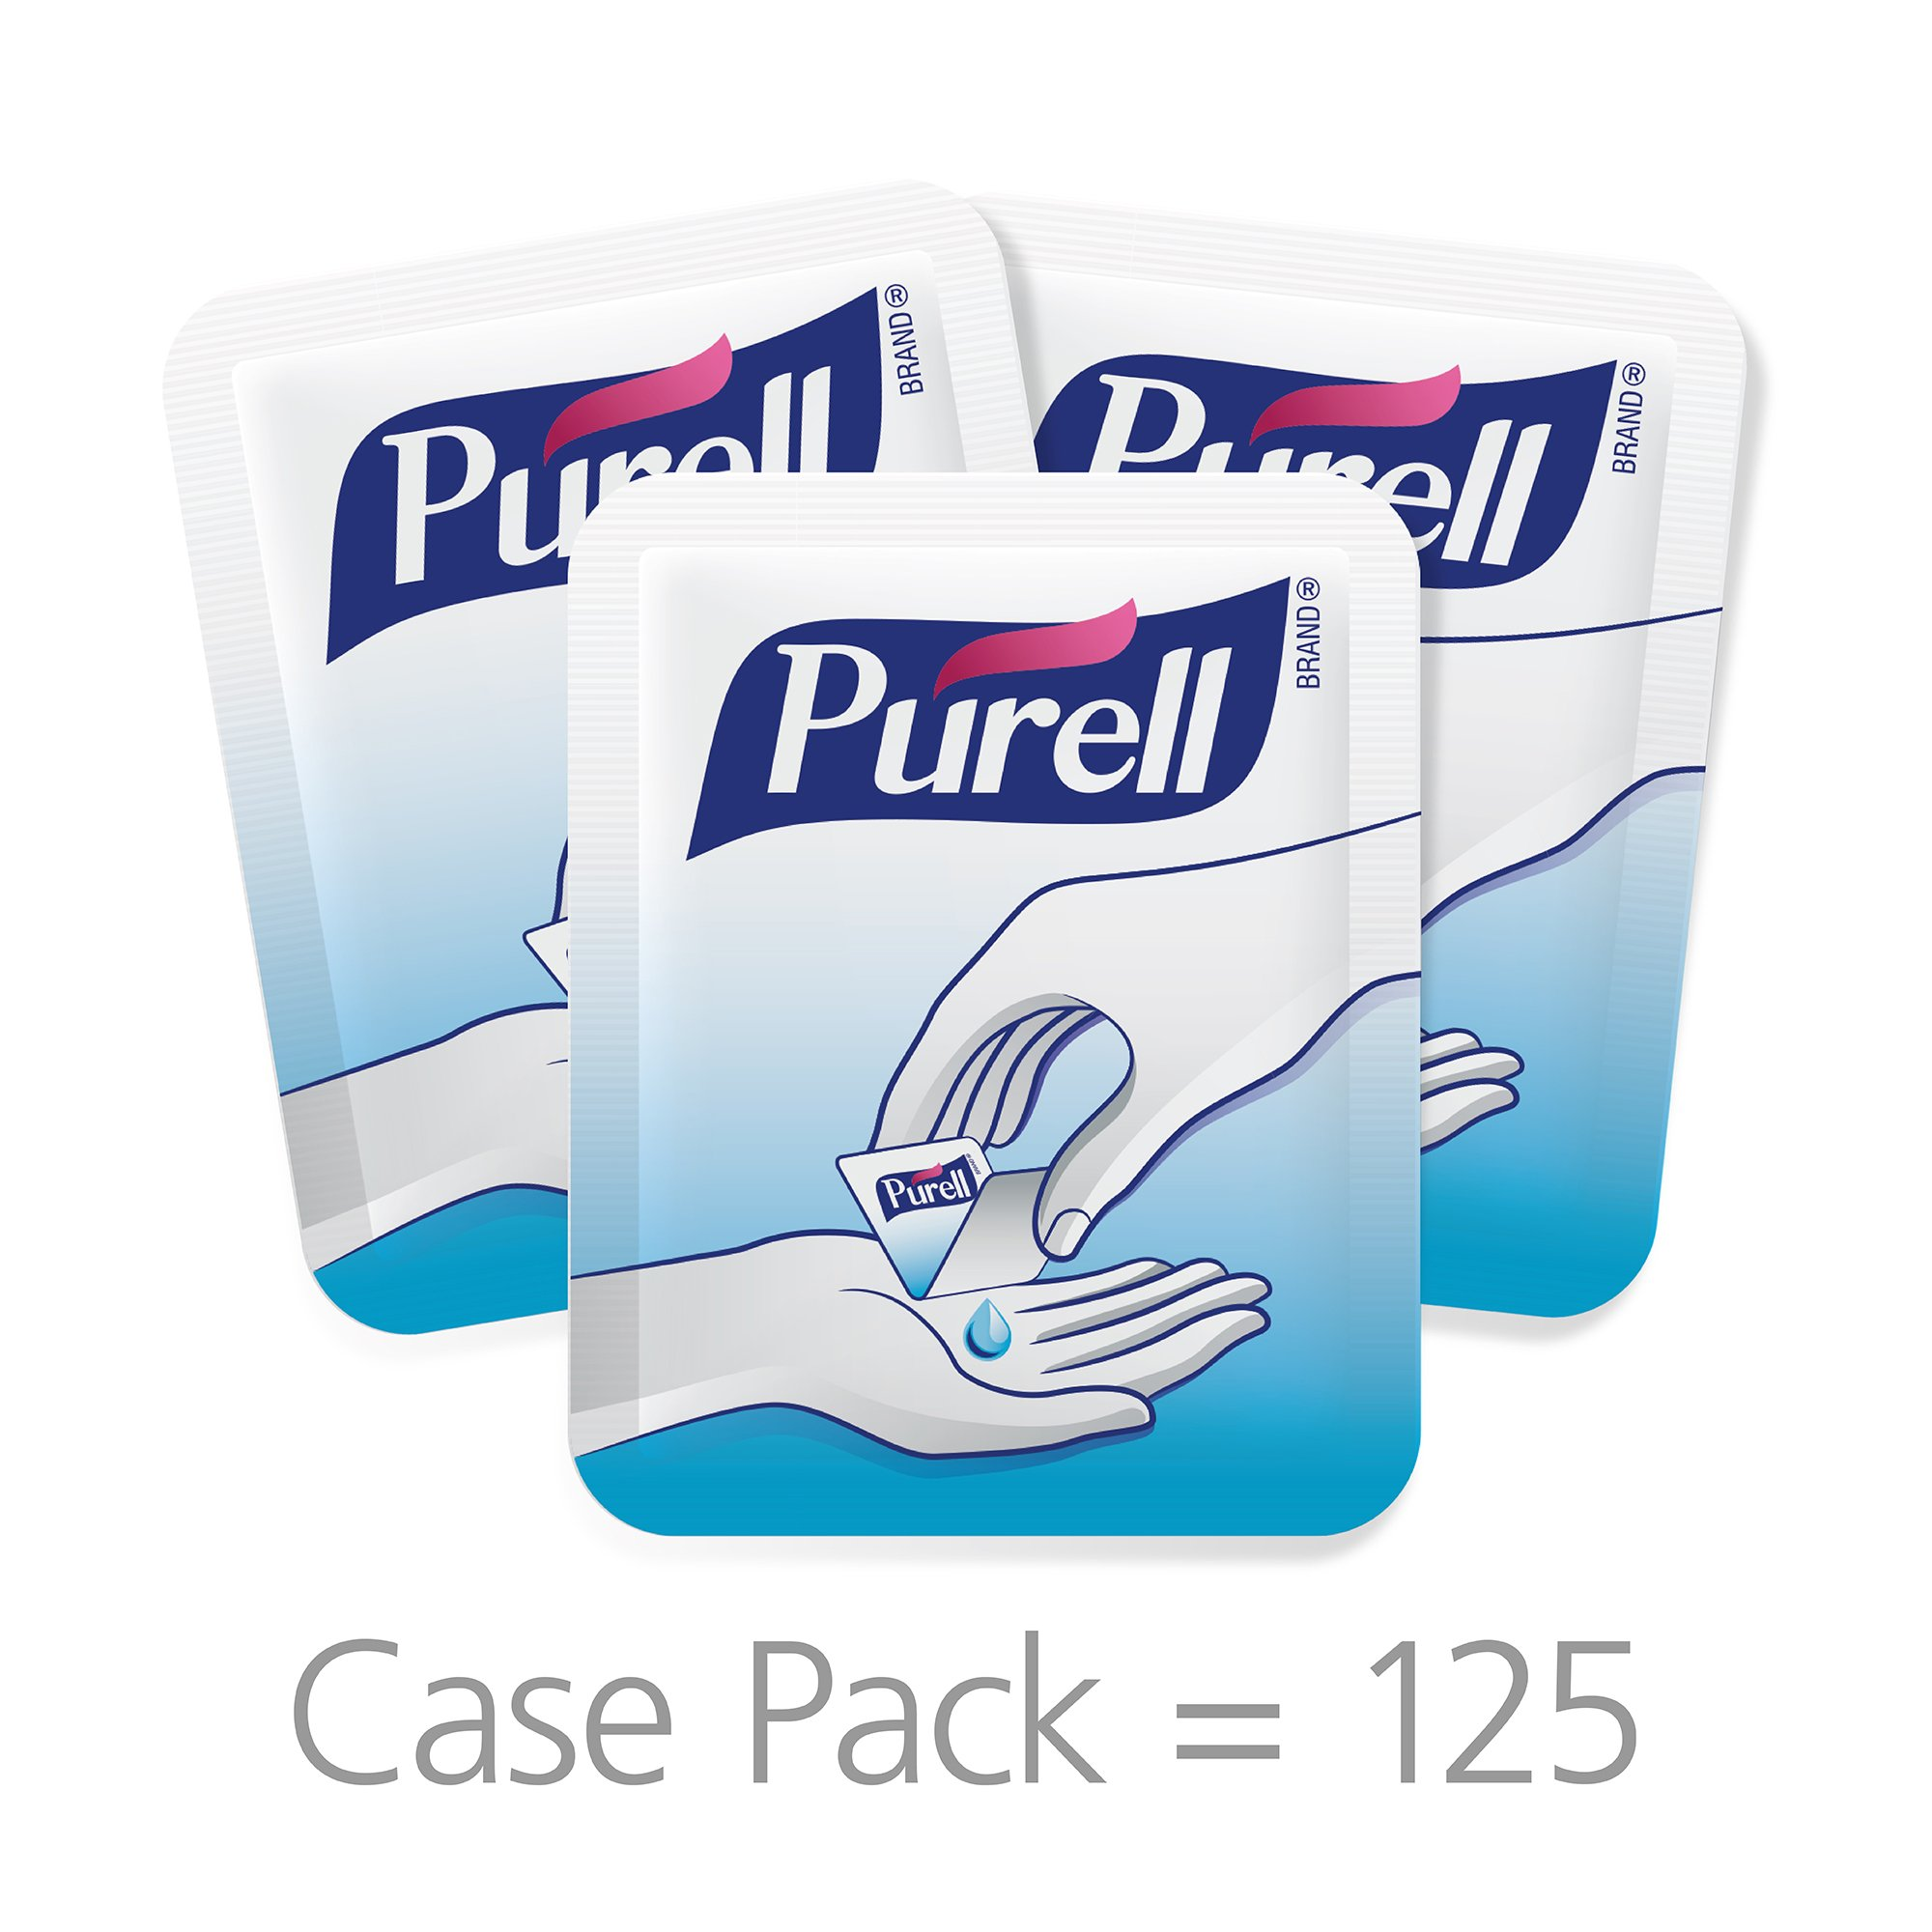 PURELL Advanced Hand Sanitizer Singles - Travel Size Single Use Individual Portable Packets, 125 count Self Dispensing Packets in a Display Box - 9620-12-125EC by Purell (Image #3)